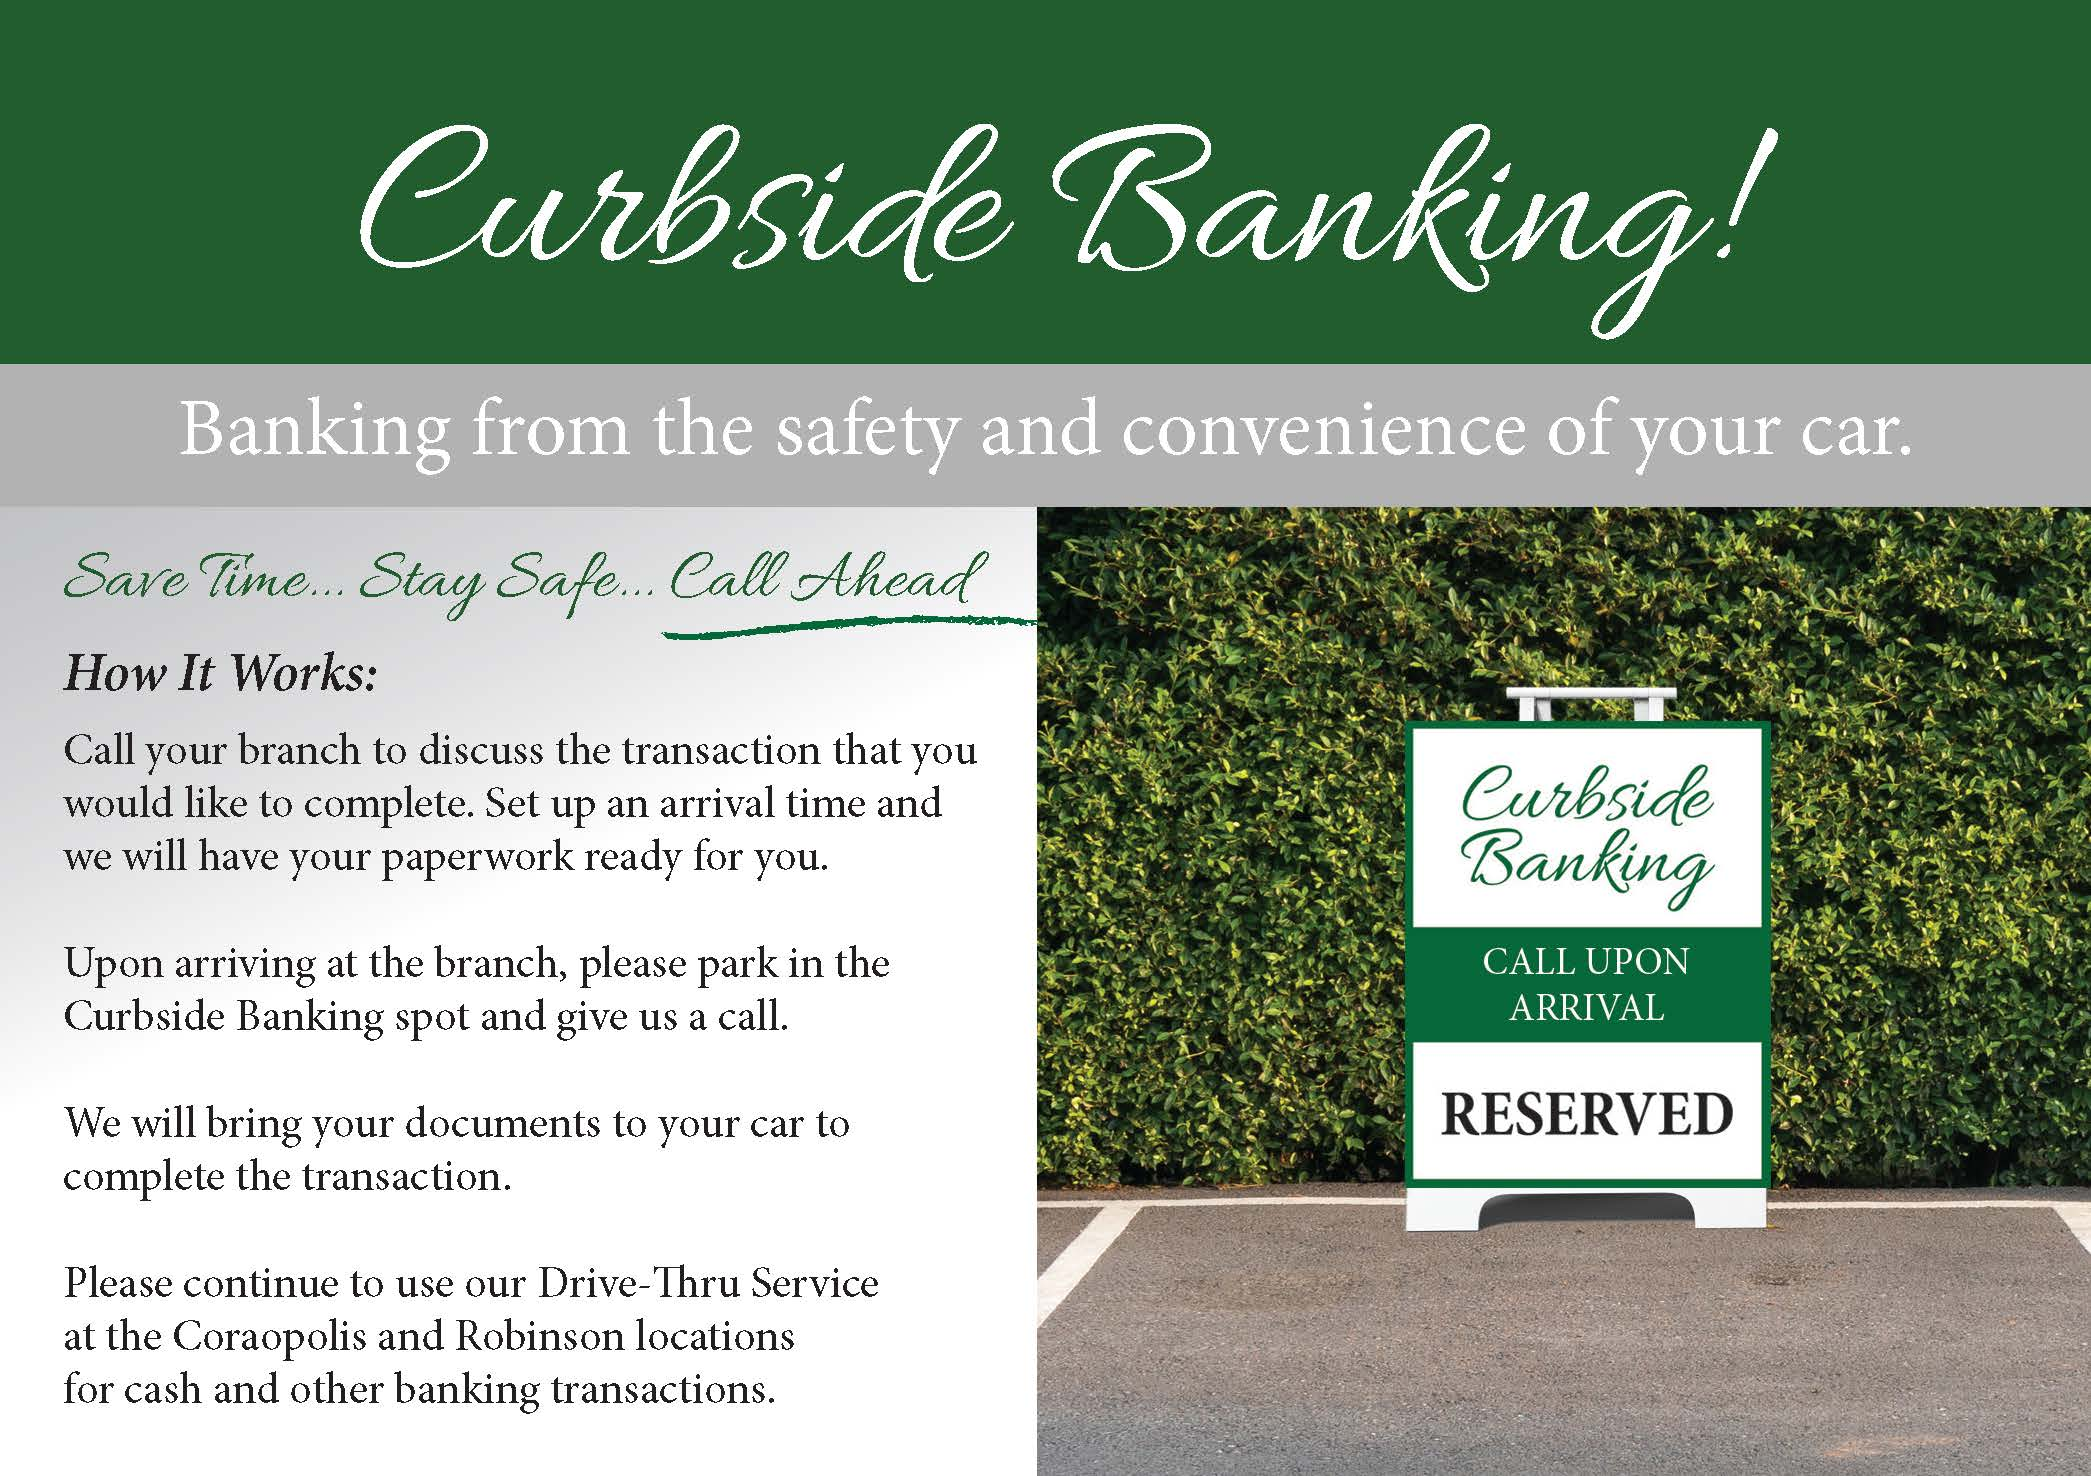 Curbside banking 2020